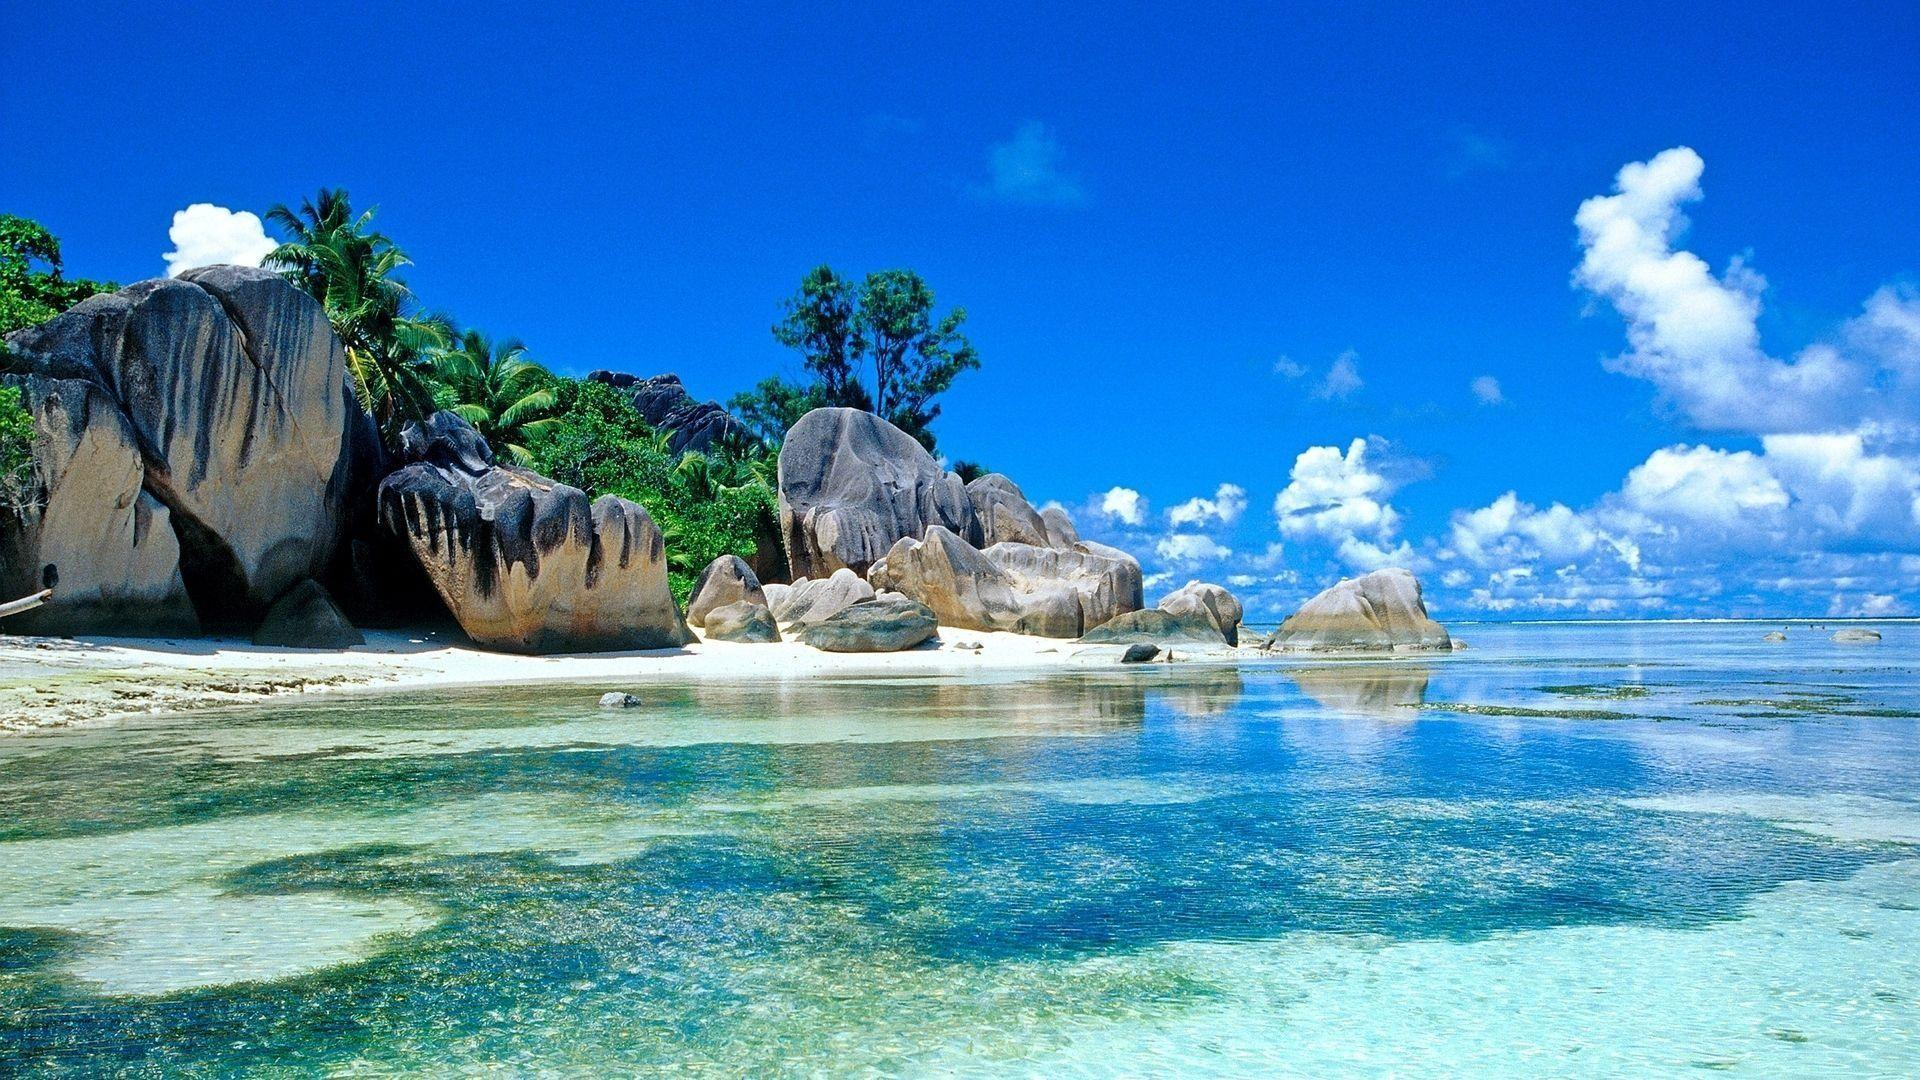 Captivating Beach Paradise Wallpapers Hd Background 9 HD Wallpapers | Aladdino.